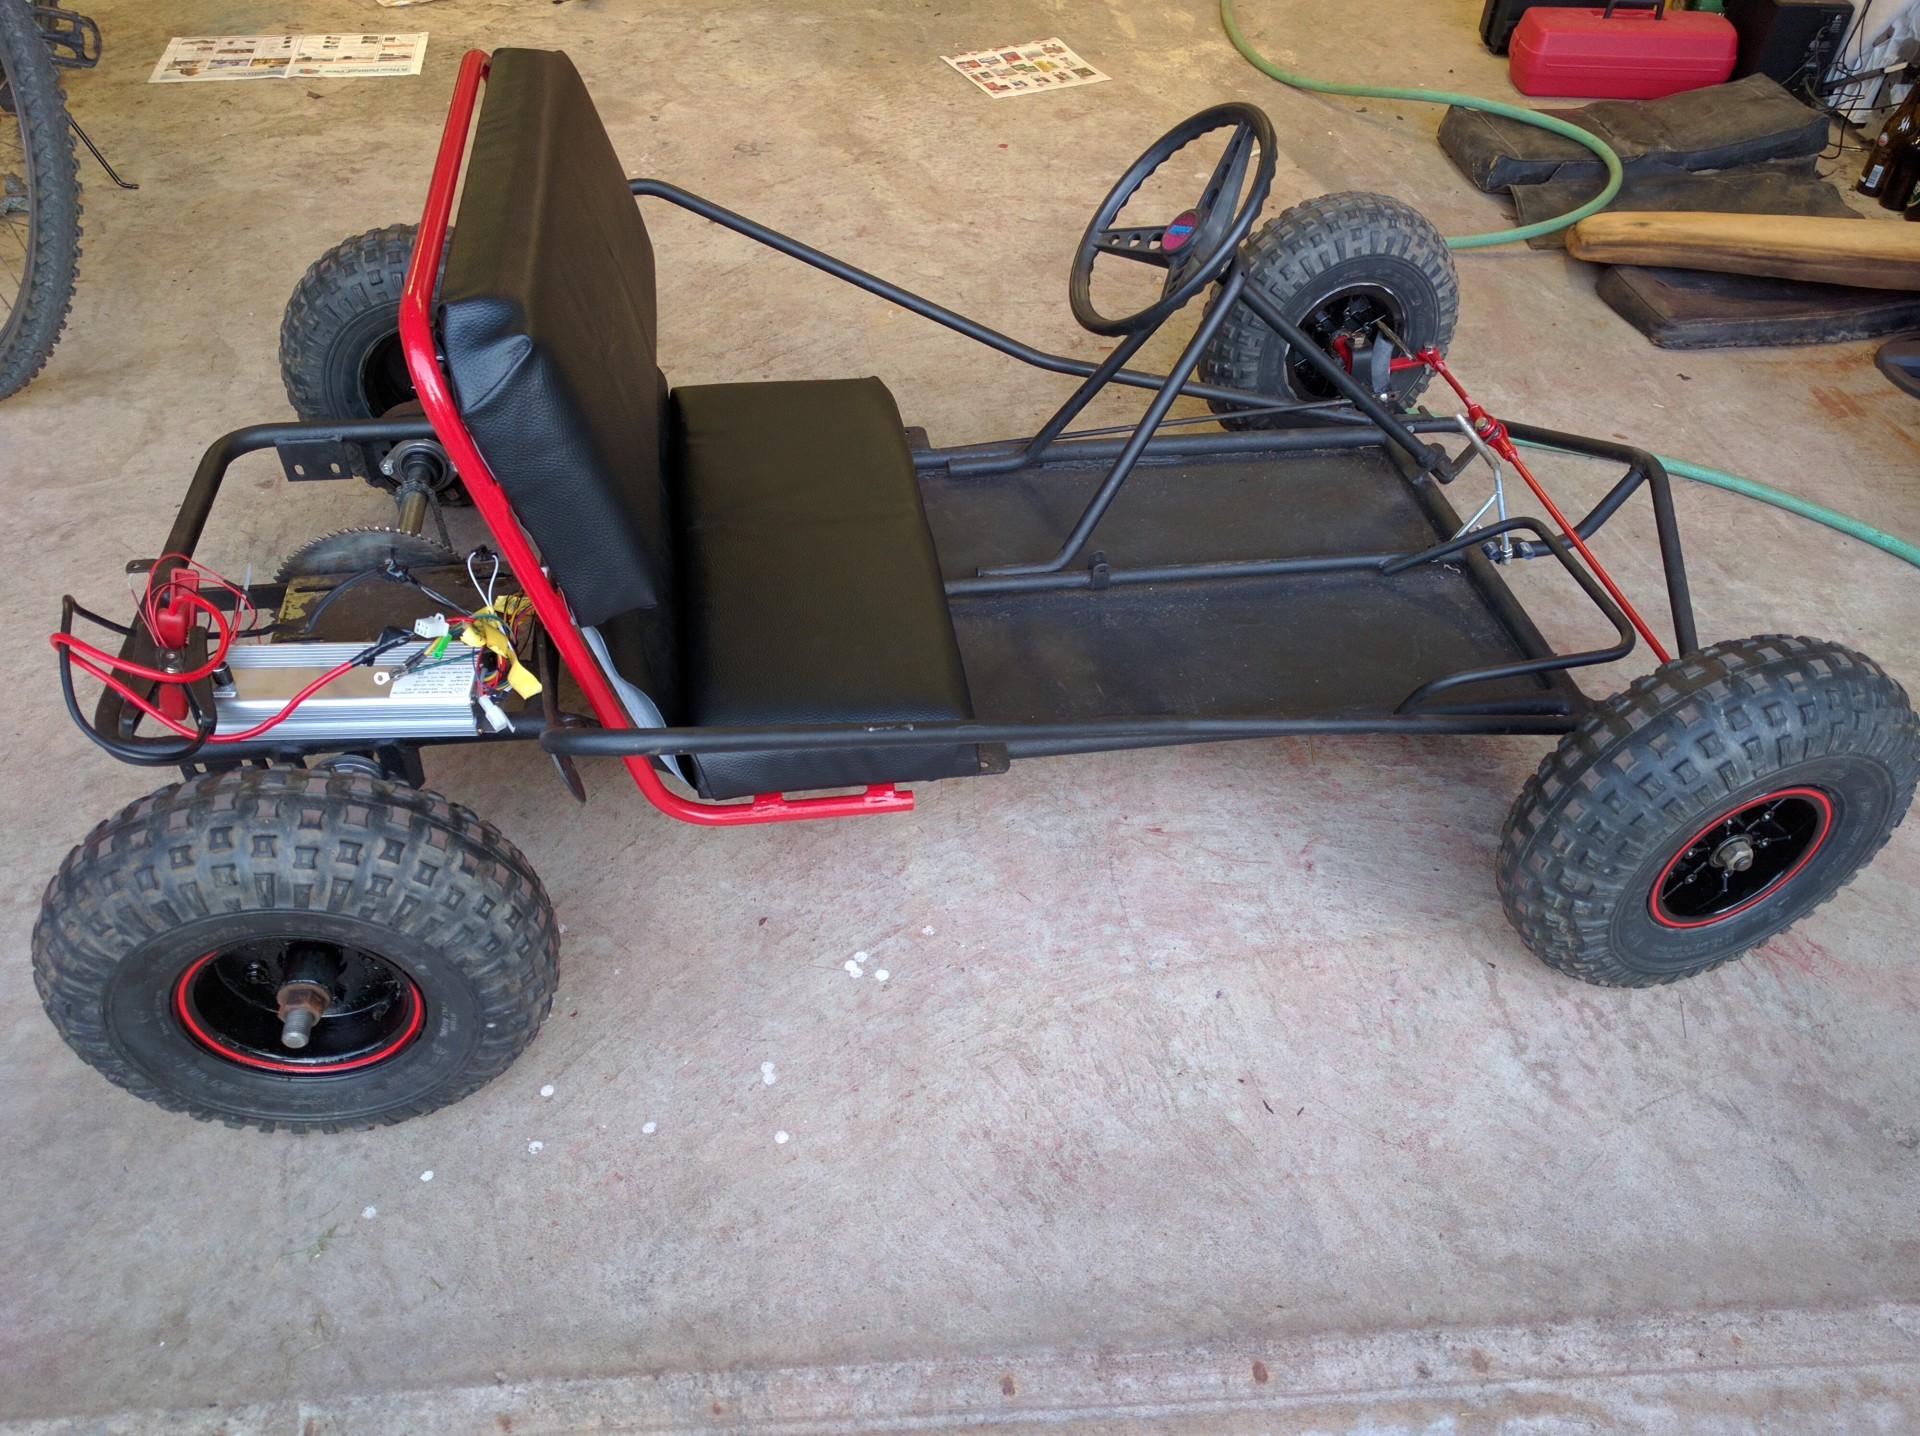 E-Kart: The electric Go Kart | Details | Hackaday.io